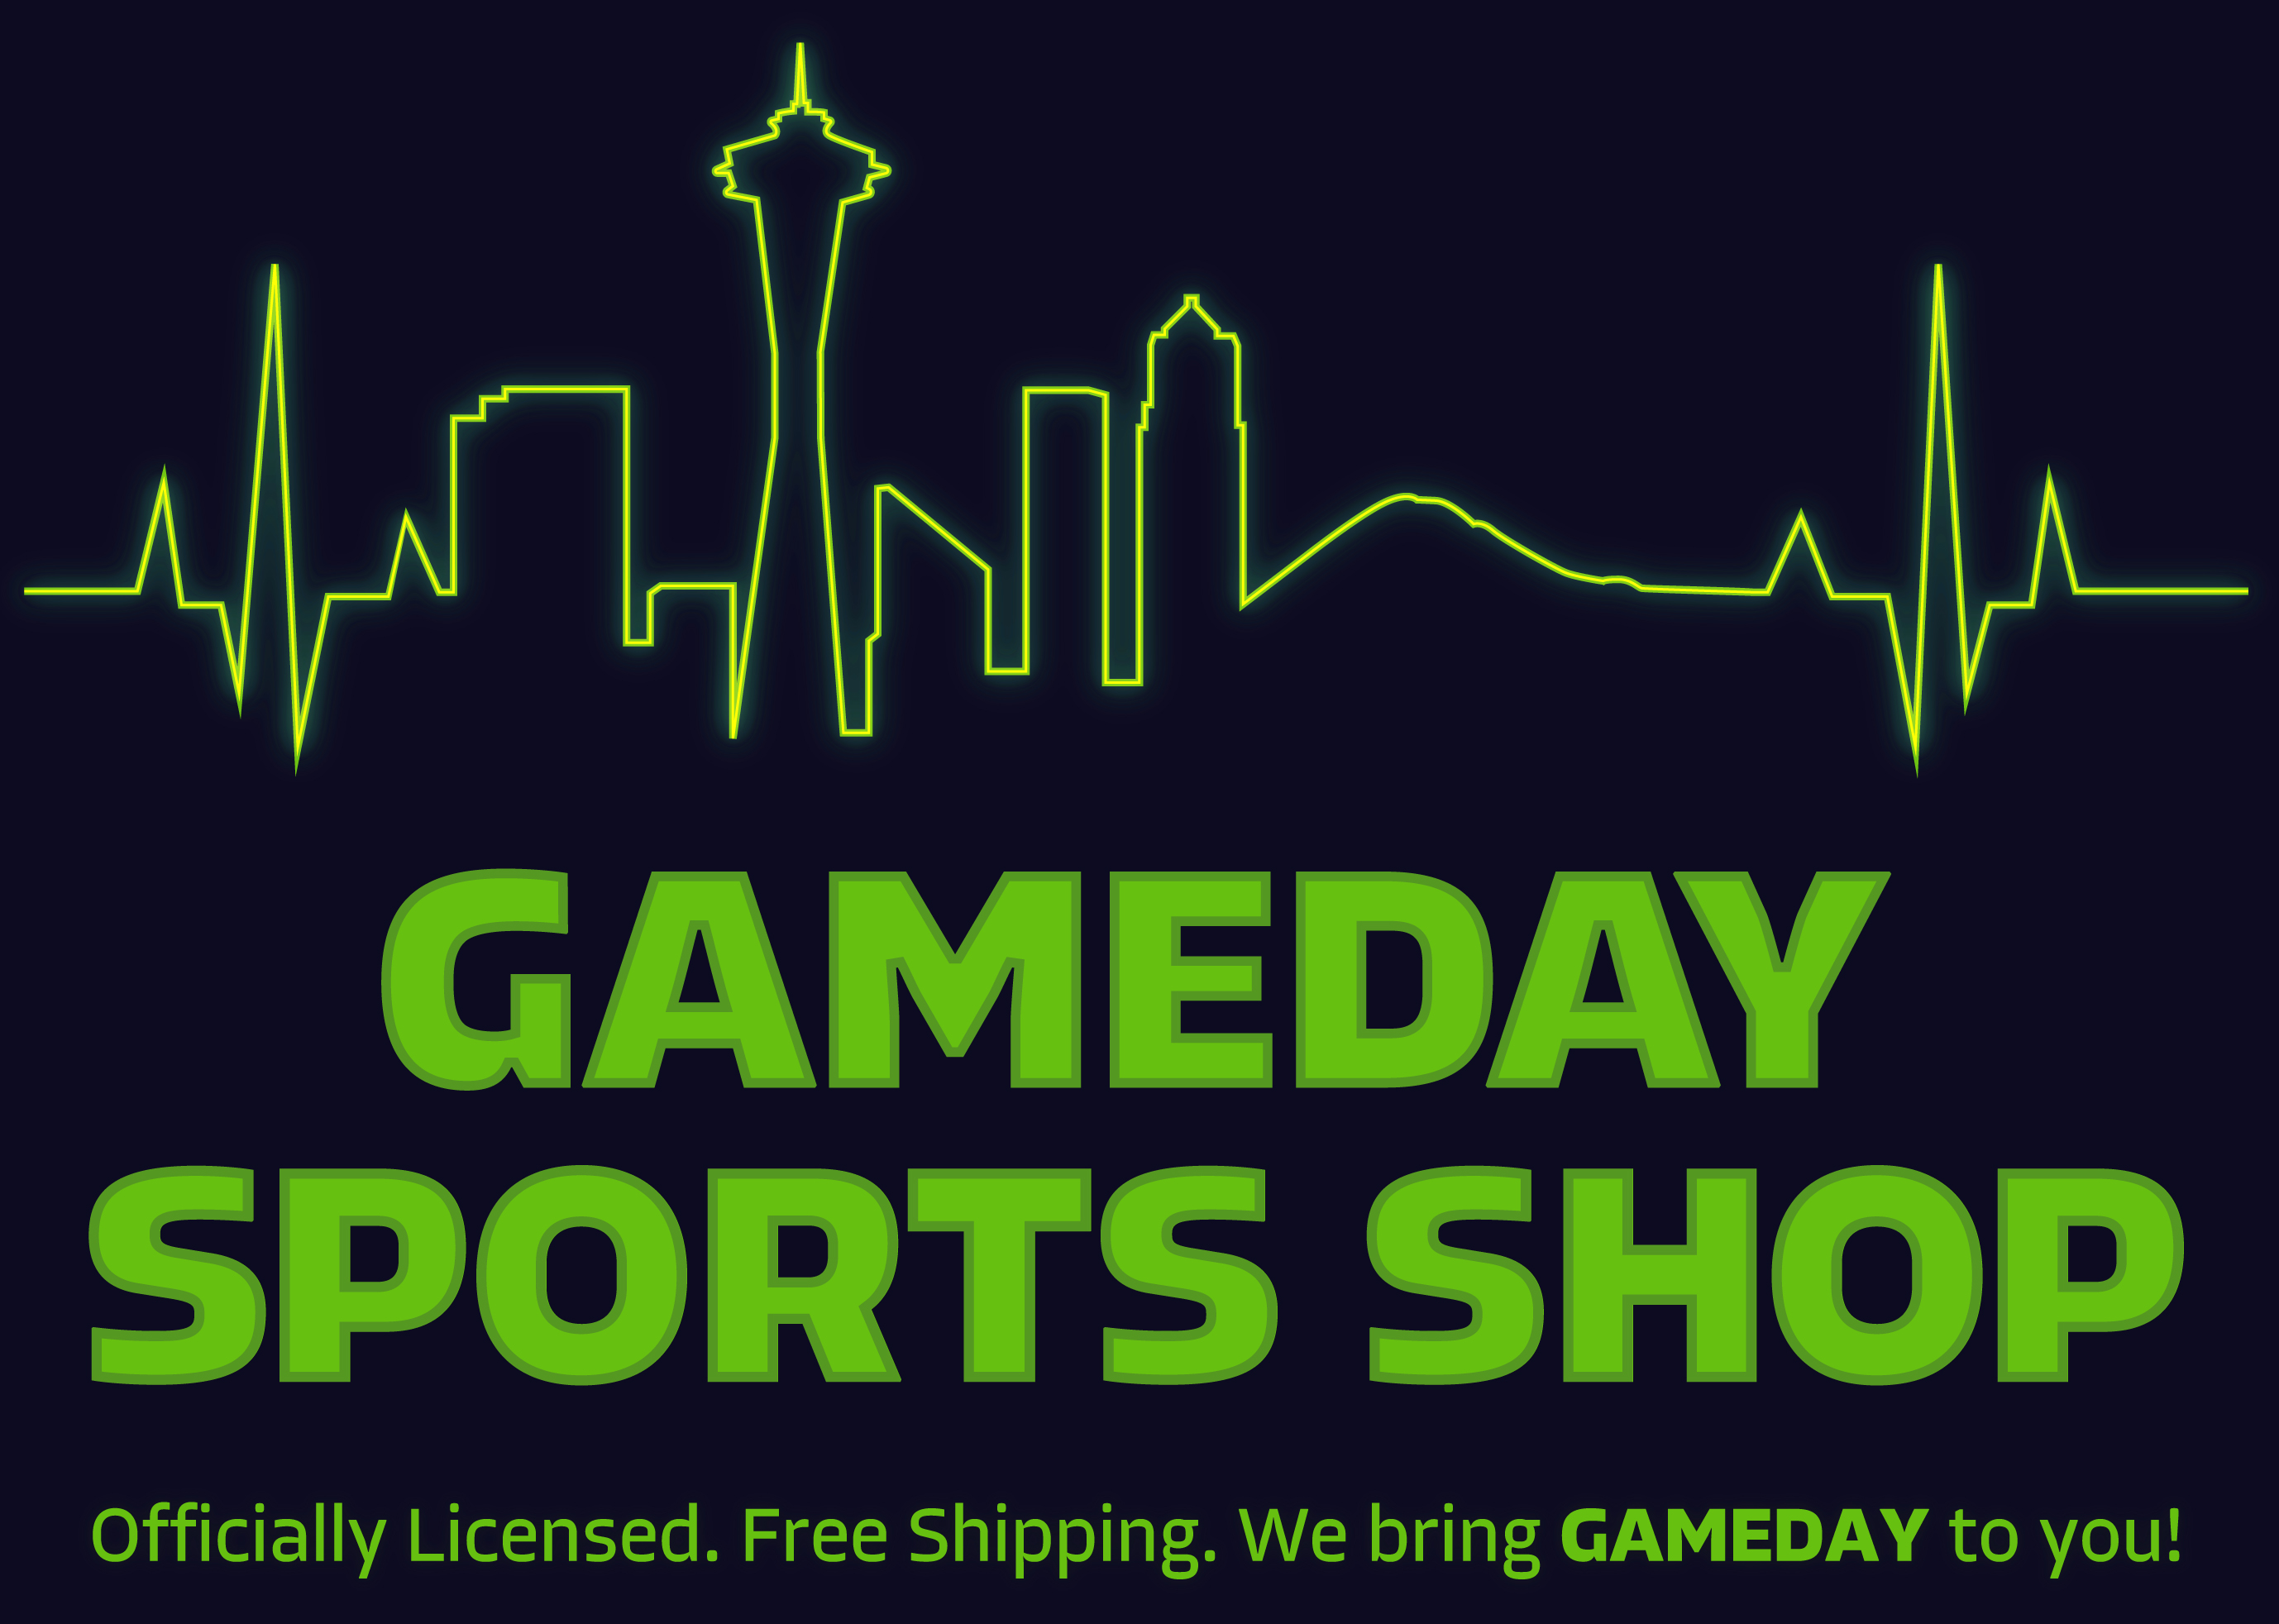 Gameday Sports Shop